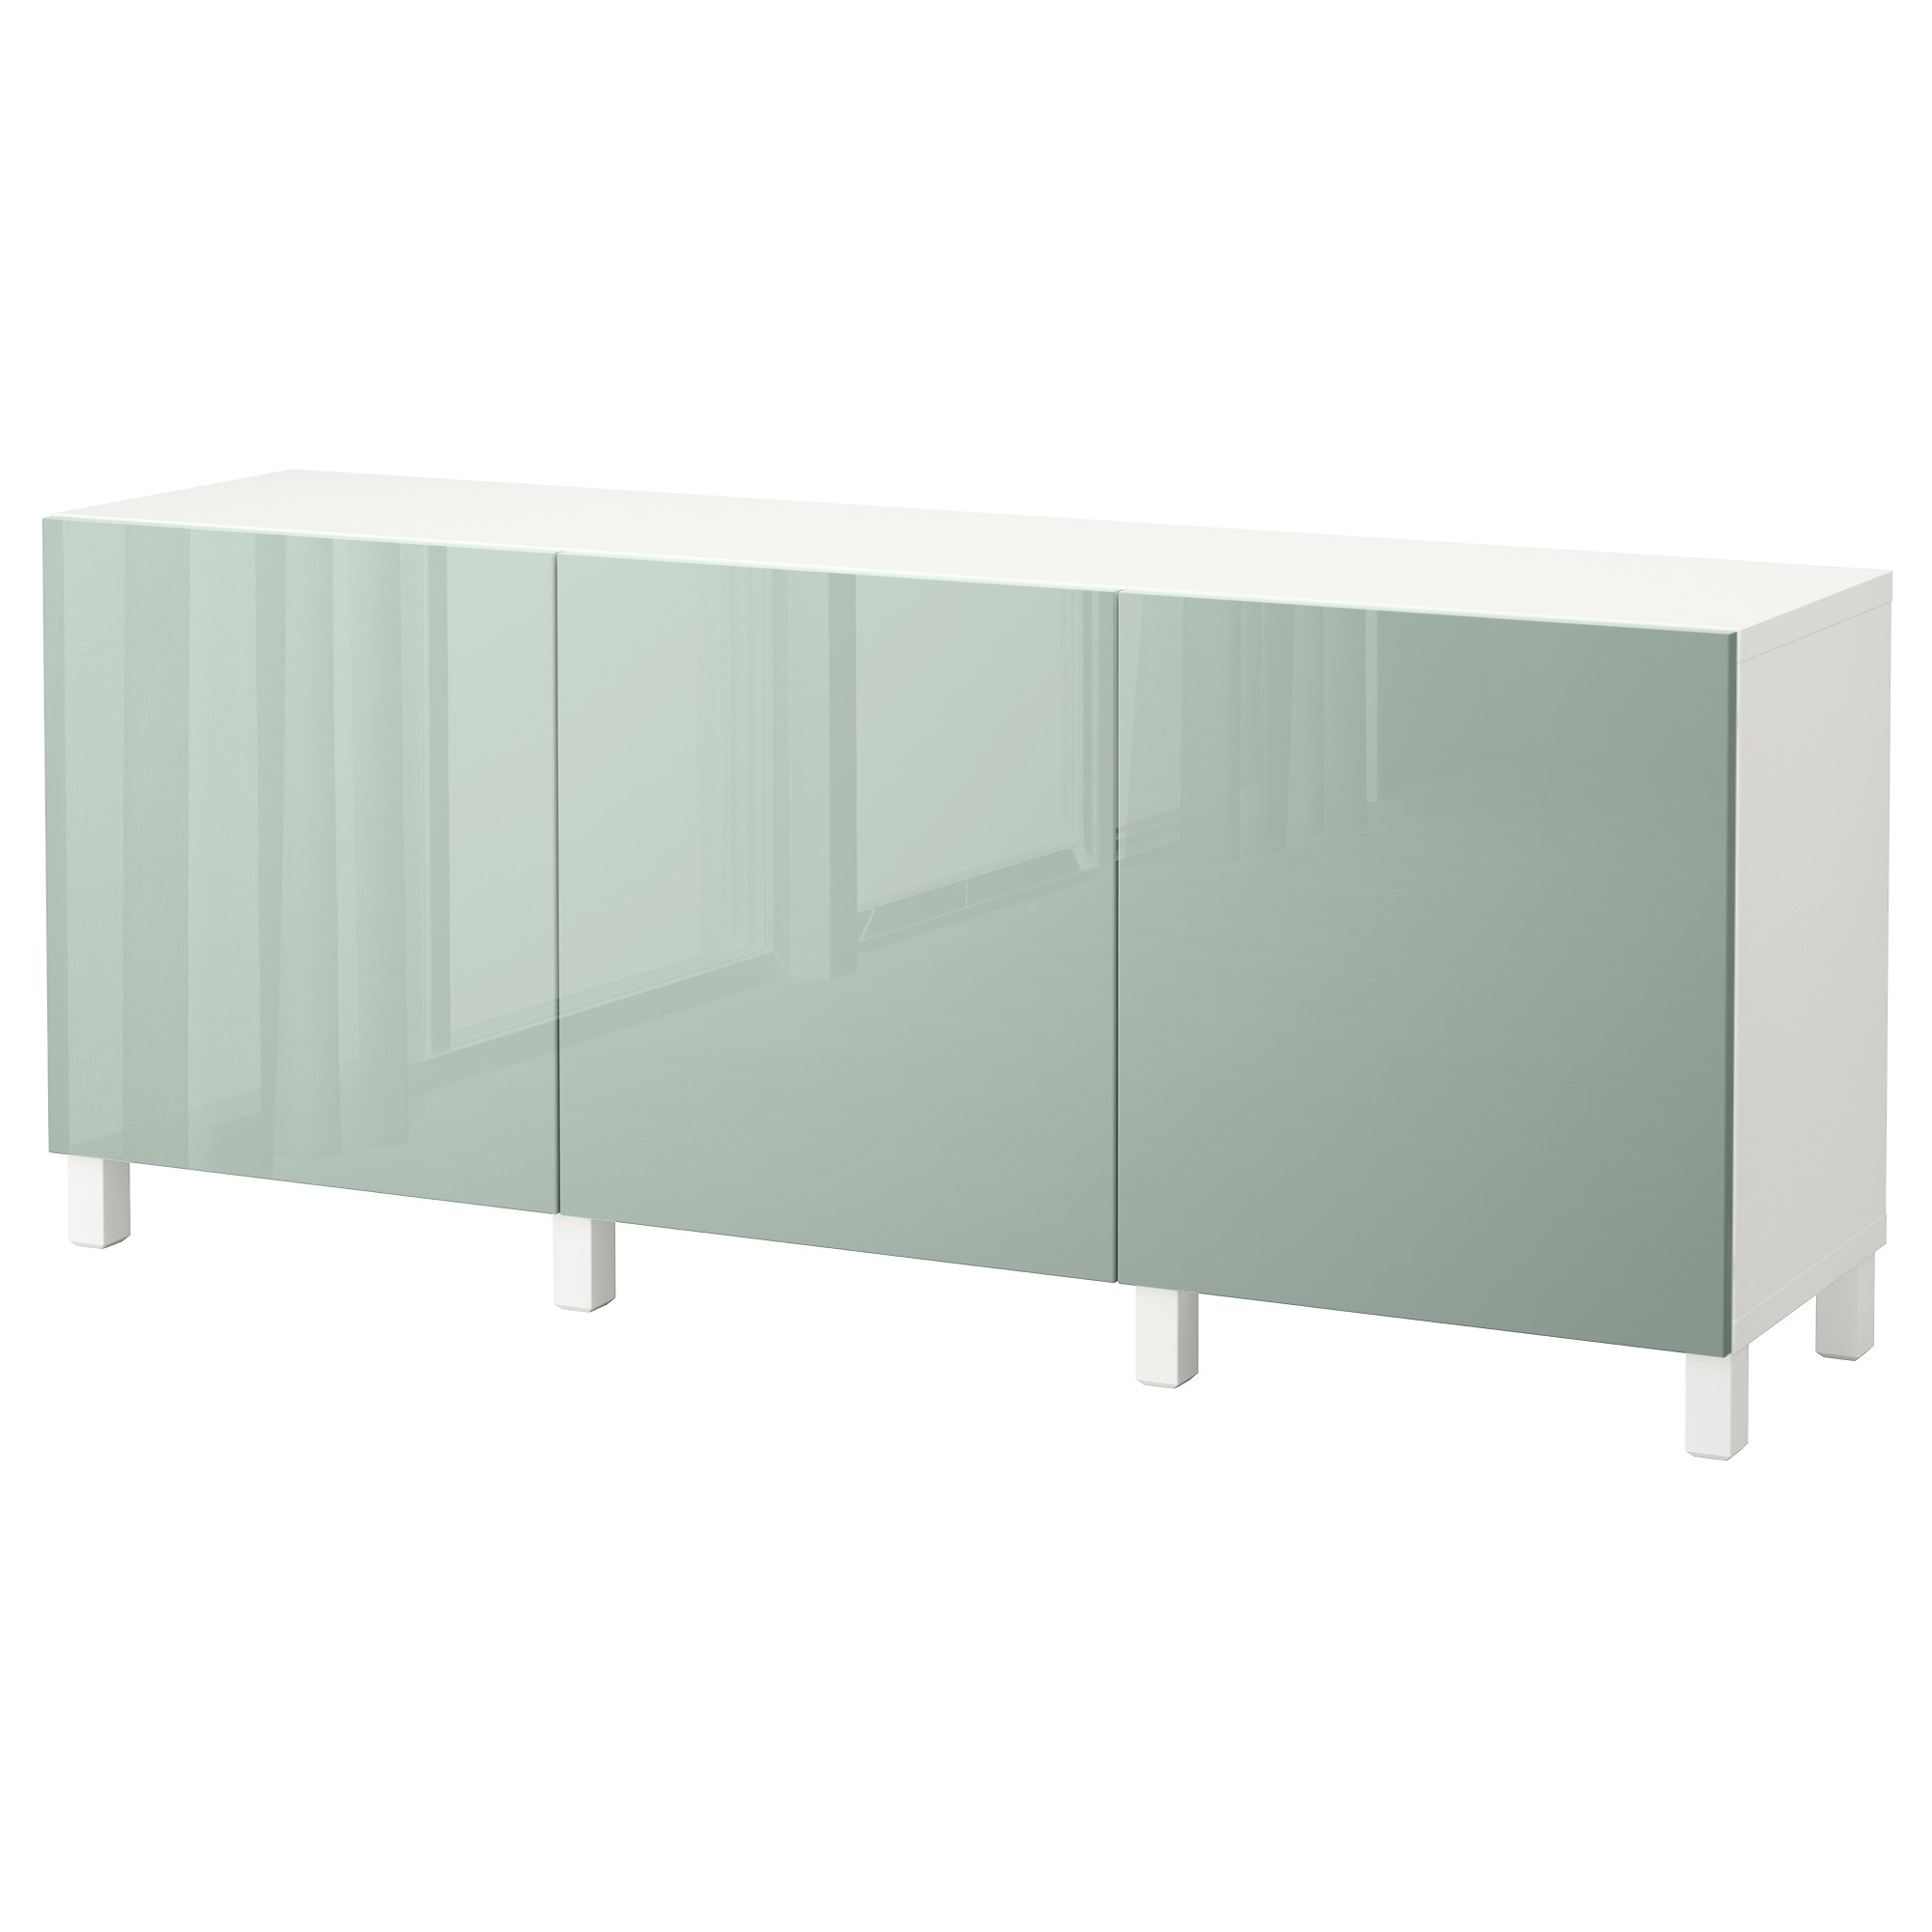 Storage Combination With Doors BestÅ White Selsviken High Gloss Light Grey Green